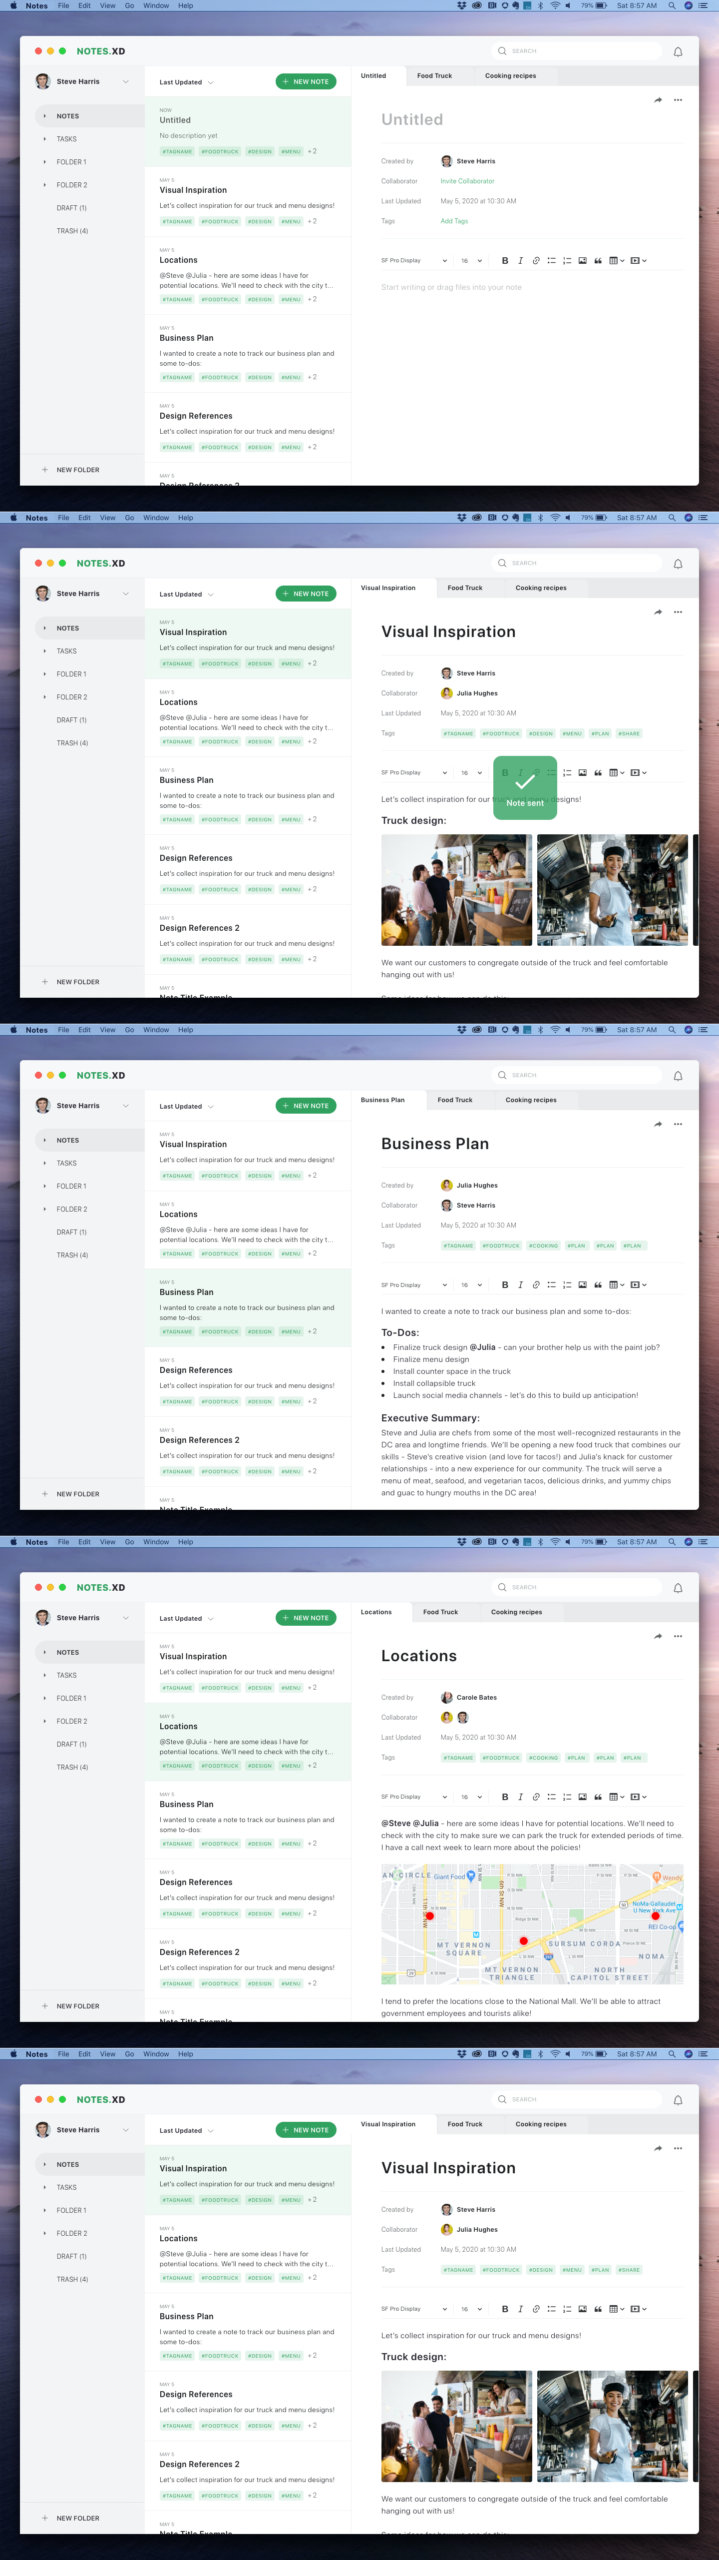 Adobe Note UI Kit for Adobe XD from UIGarage